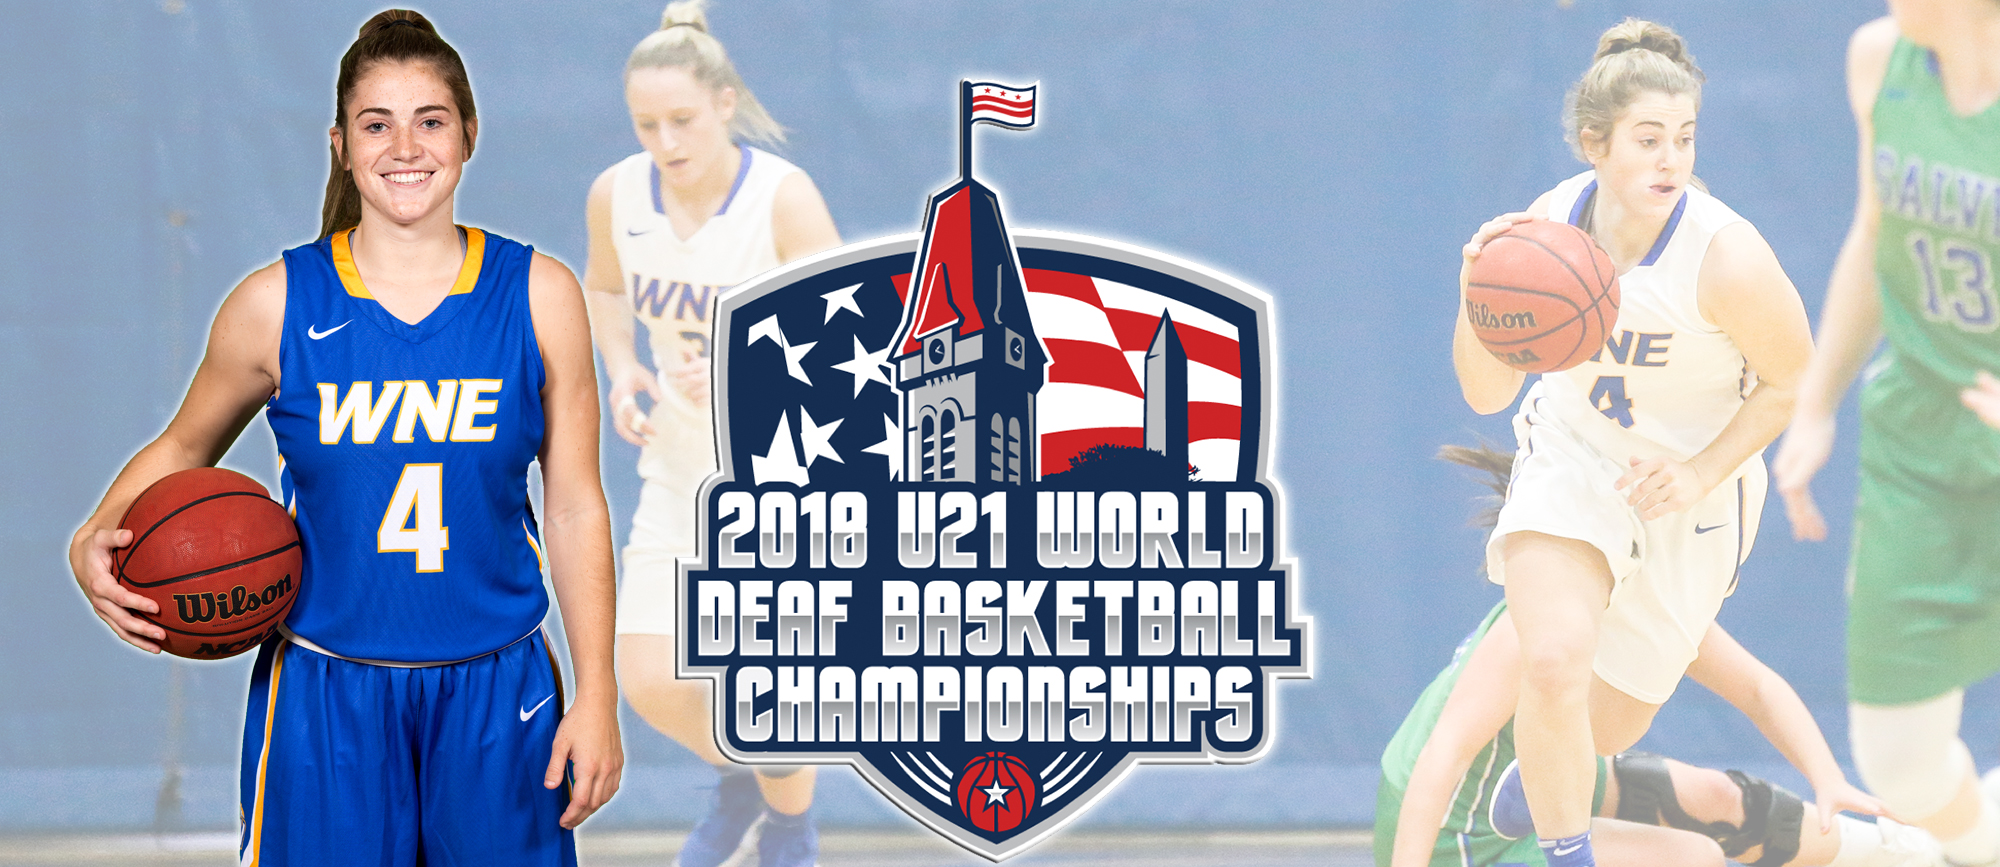 Lauren Chadwick to Represent USA at U21 World Deaf Basketball Championships in Washington, D.C.